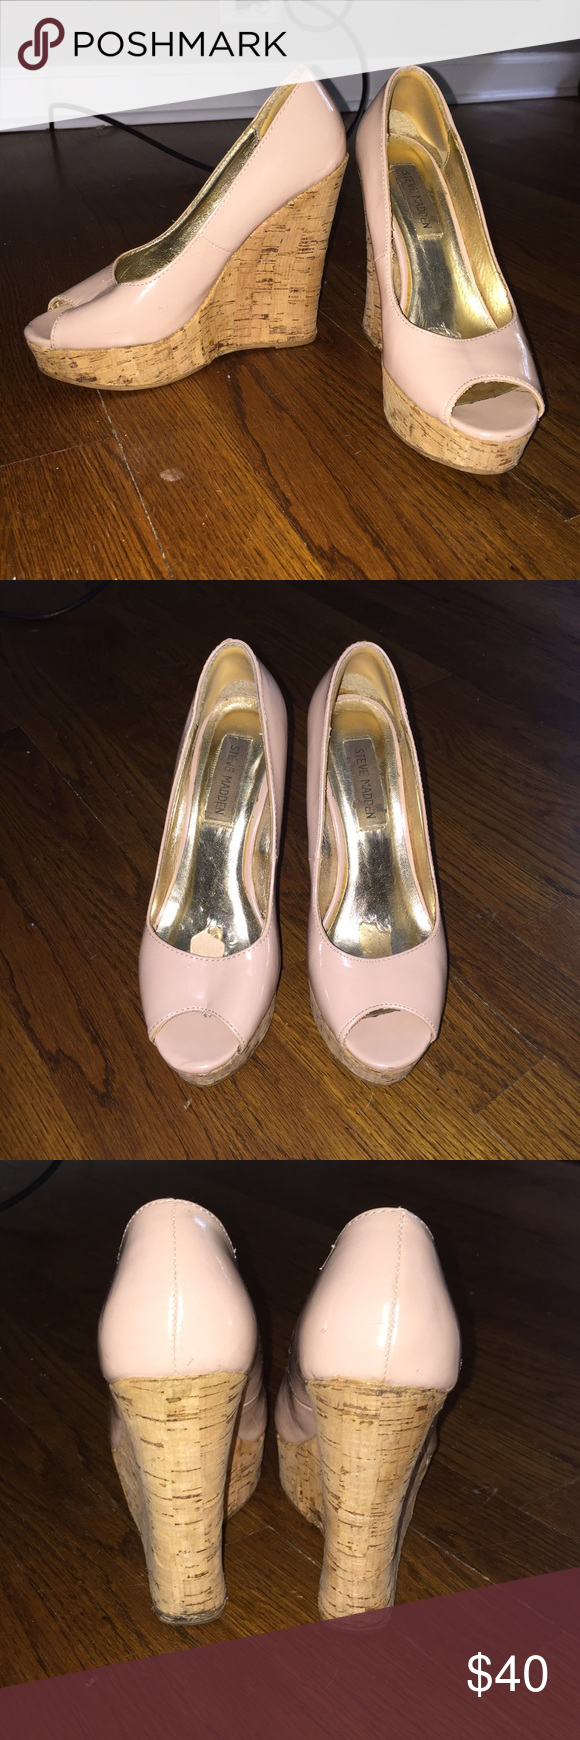 Steve Madden • Nude Patent Cork Wedges Steve Madden nude patent leather & cork wedges. Purchased at DSW circa 2011. Well loved in their time! I had foam inserts for the balls of my feet in them which peeled some of the lining up (see photo). Feel free to ask questions!! Steve Madden Shoes Wedges